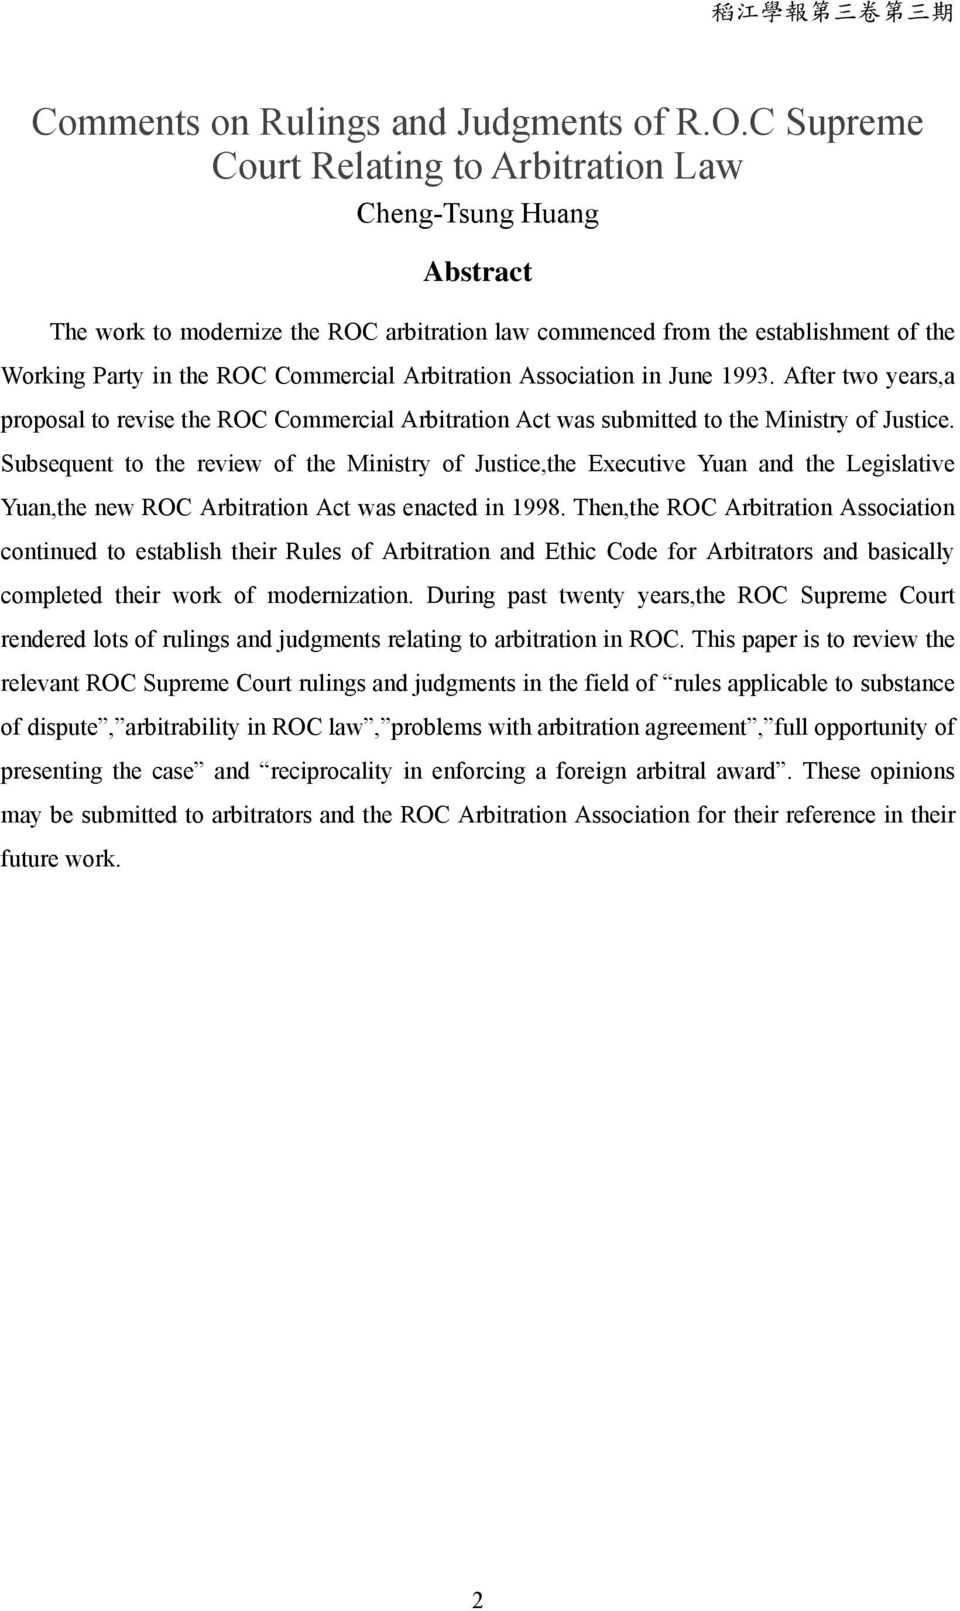 Arbitration Association in June 1993. After two years,a proposal to revise the ROC Commercial Arbitration Act was submitted to the Ministry of Justice.